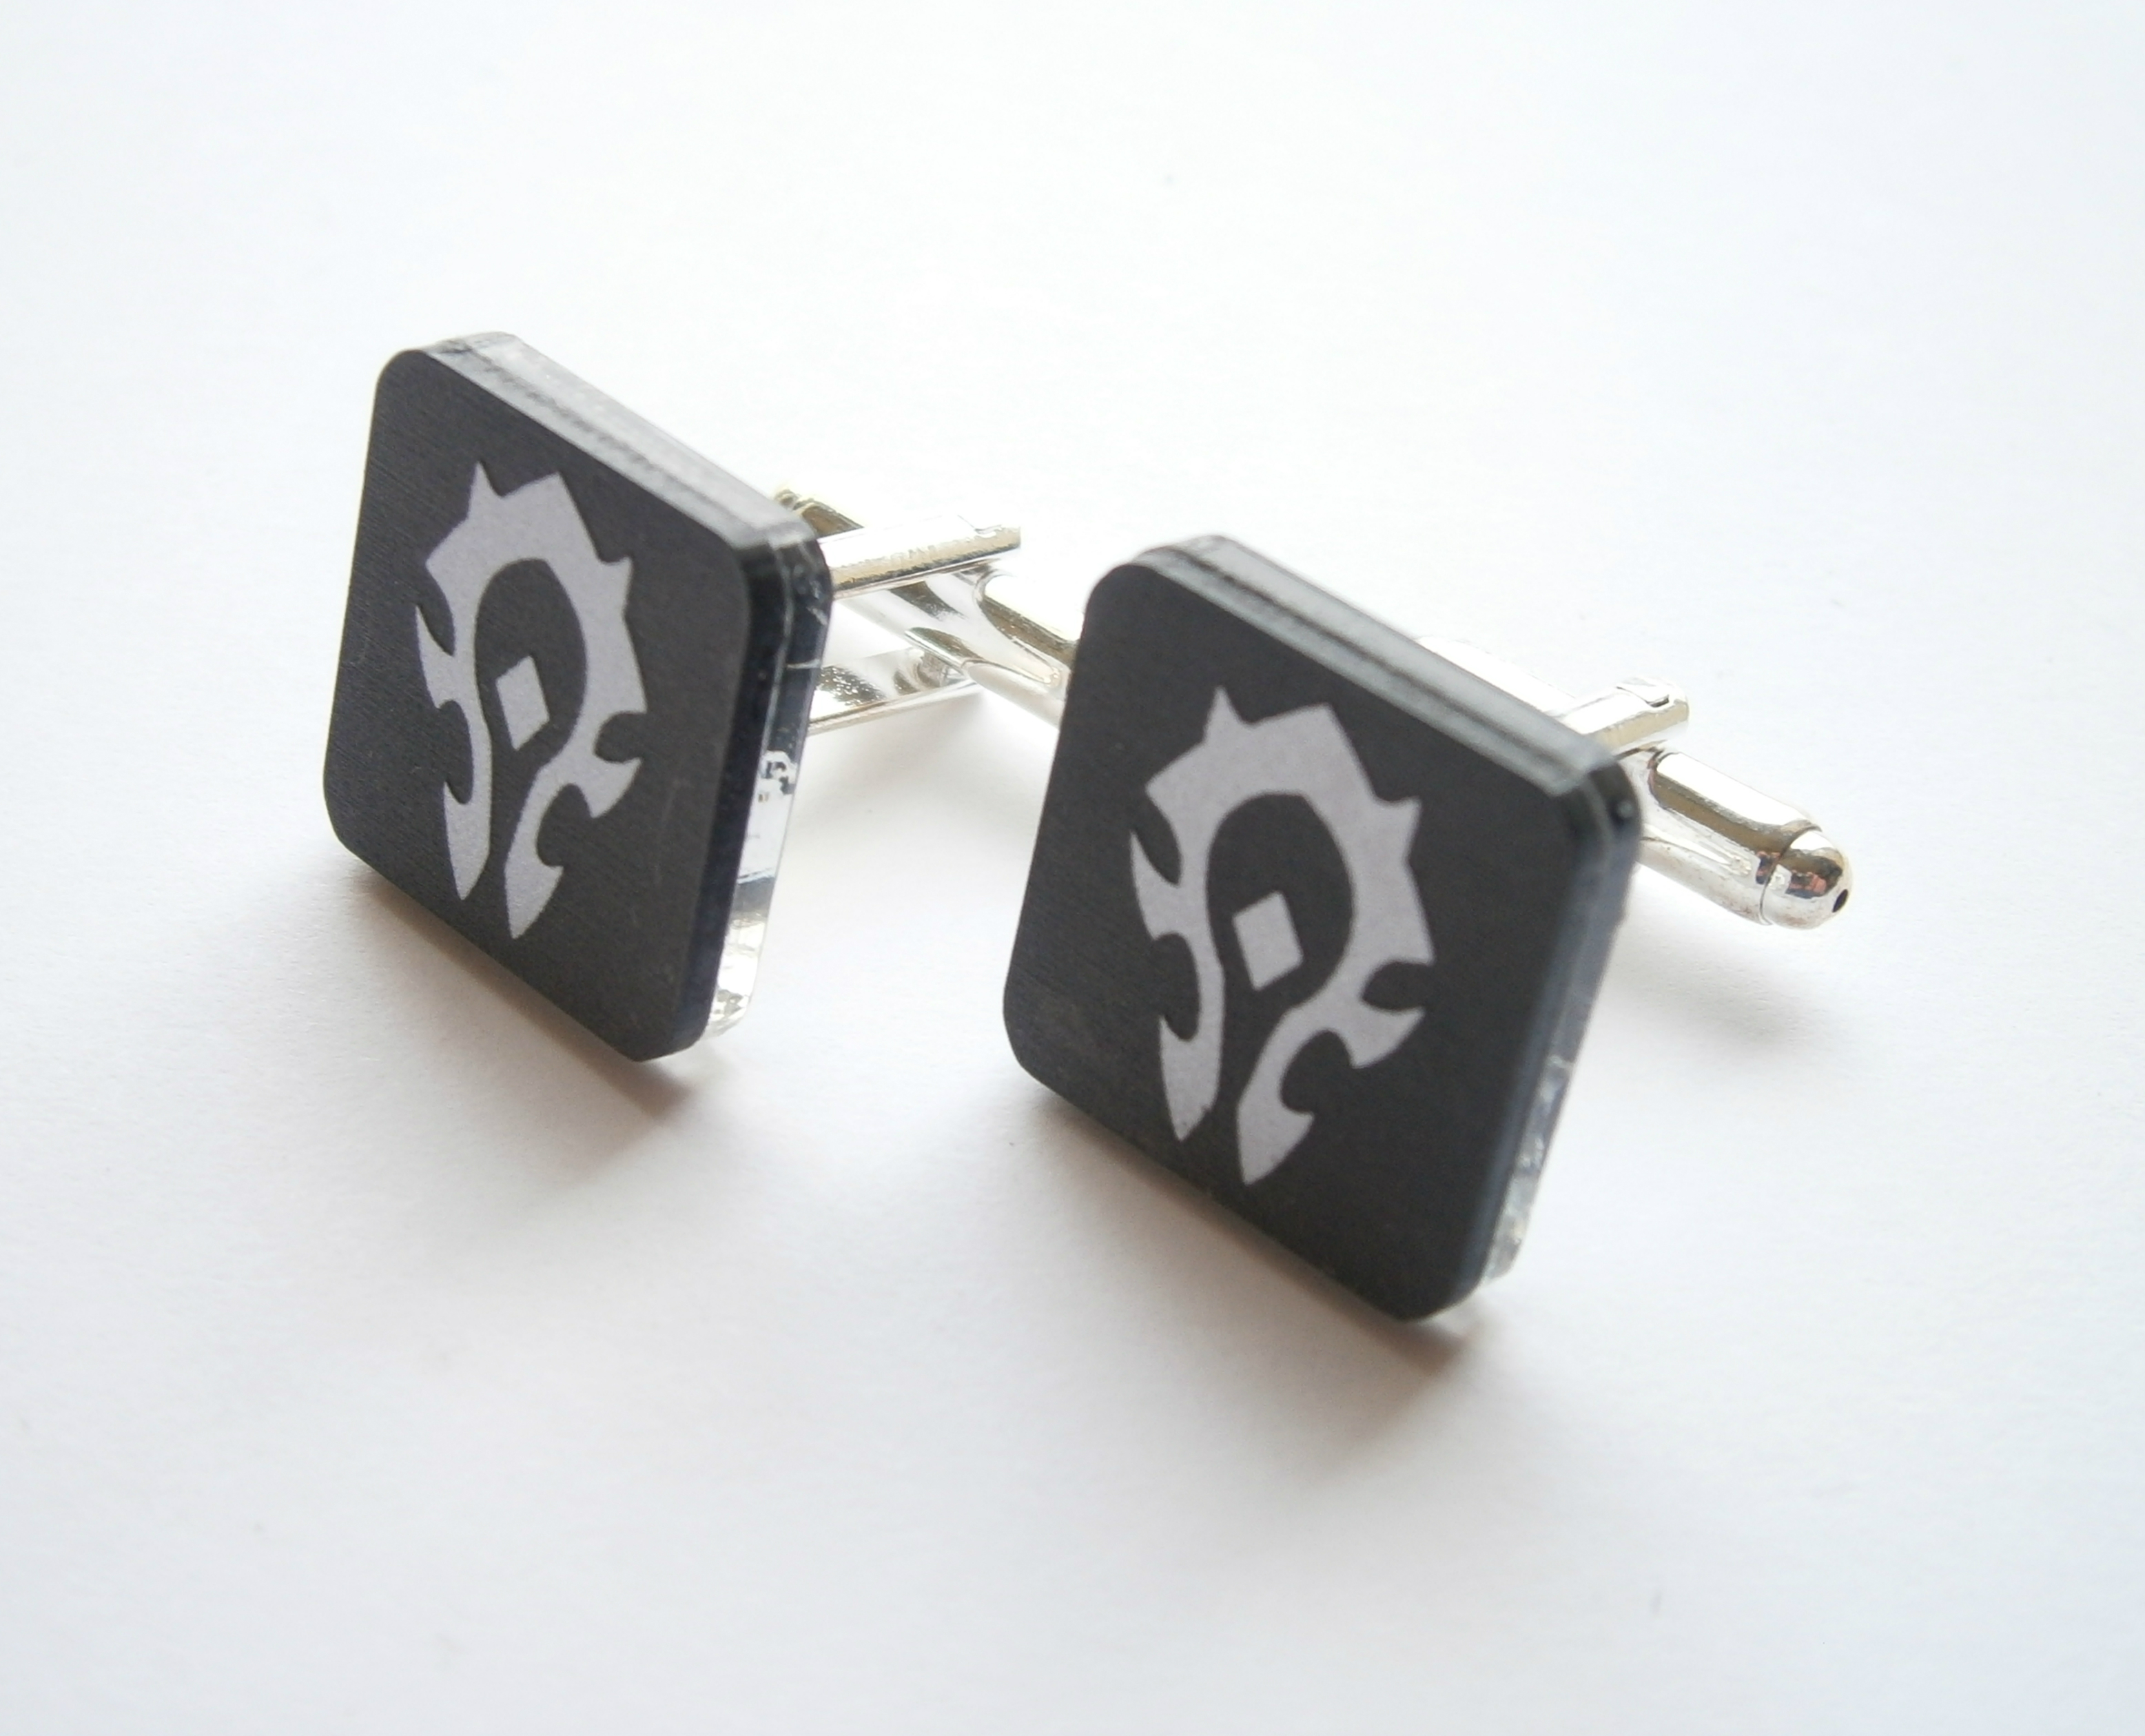 Gamer Cuff Links Gift for Him Geekery Dork Pride Cuff Links World of Warcraft Alliance Cuff Links Father/'s Day WOW RPG Cuff Links